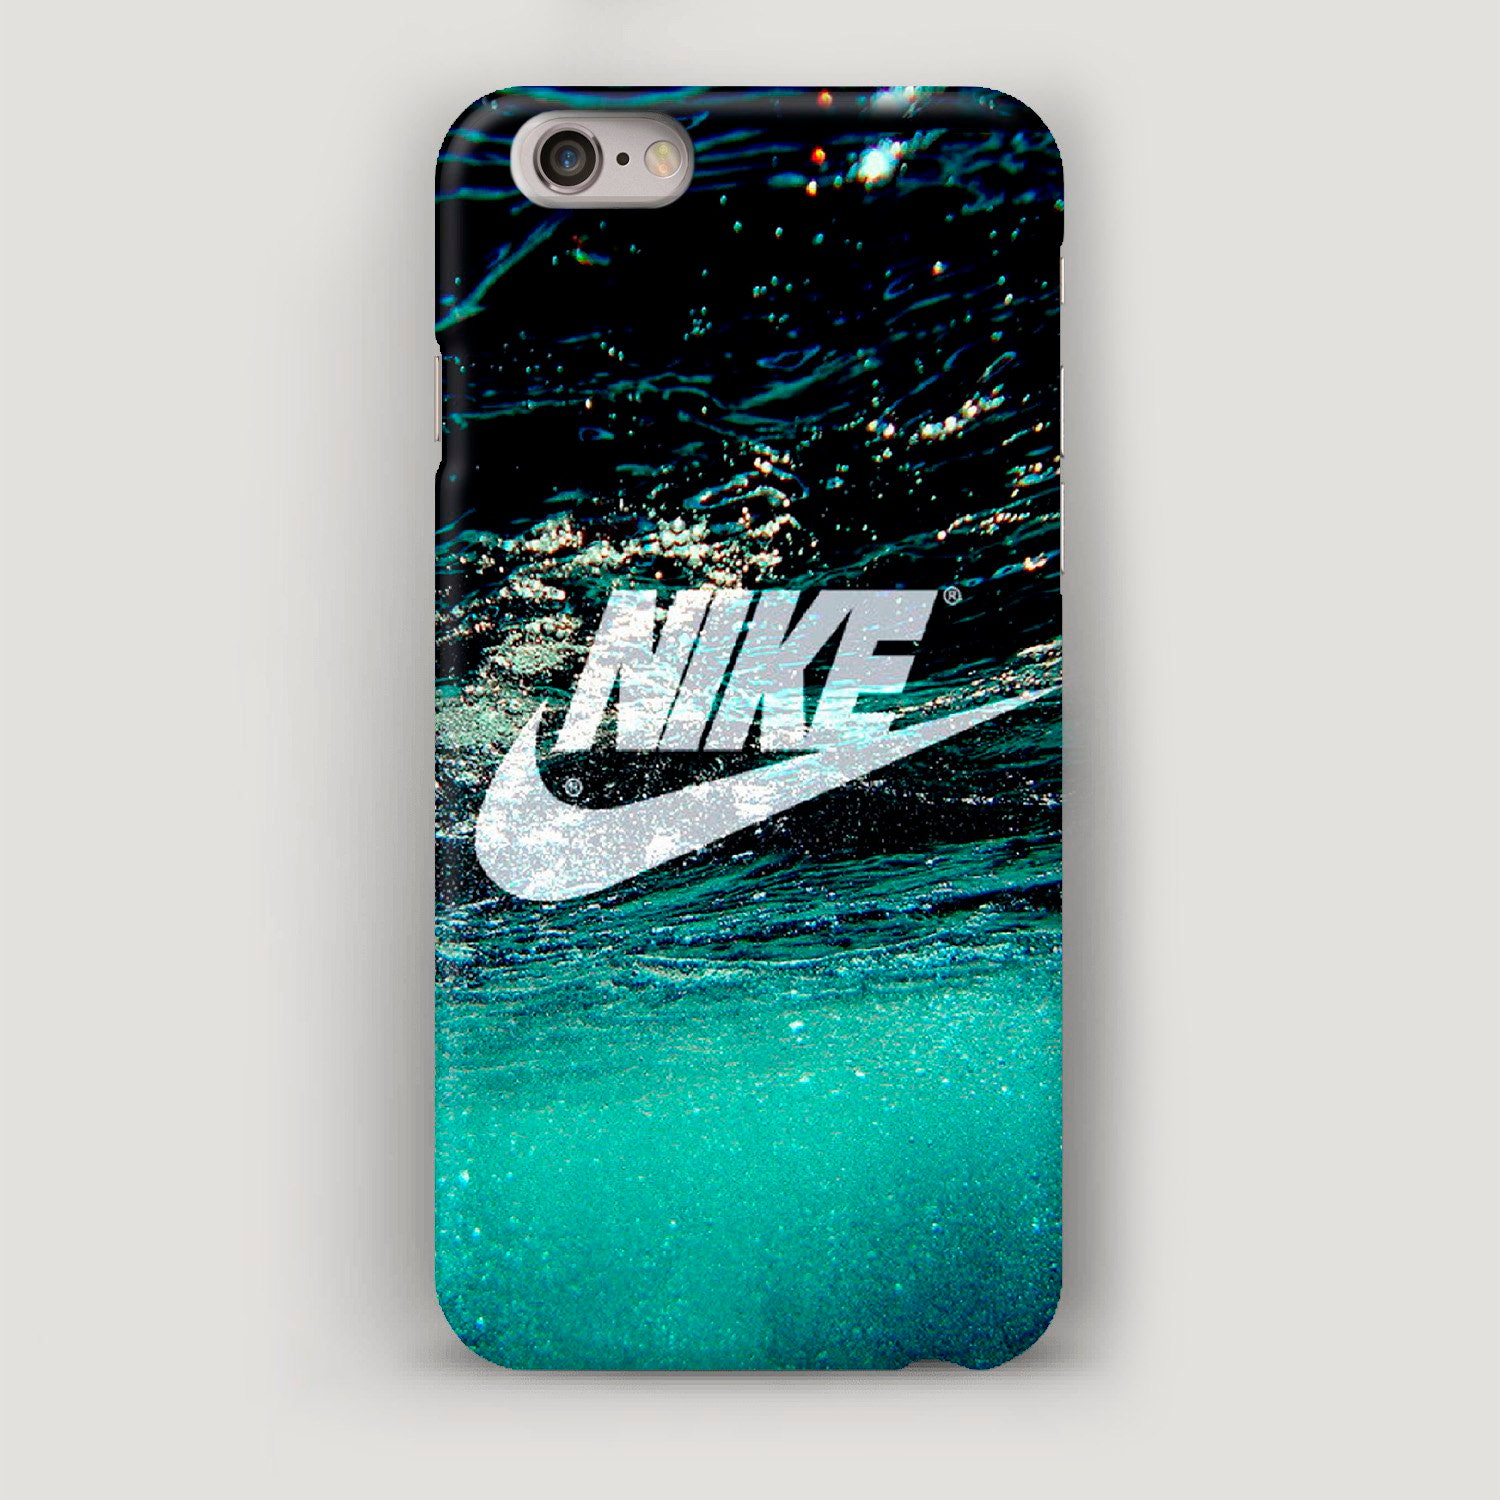 new style 4347b 31af7 Underwater iPhone 6 Case, Nike iPhone 7 Plus Case, iPhone 6S Plus Case,  iPhone 5 Case, iPhone 4 Case, Nike iPhone Cover, Nike Samsung Case